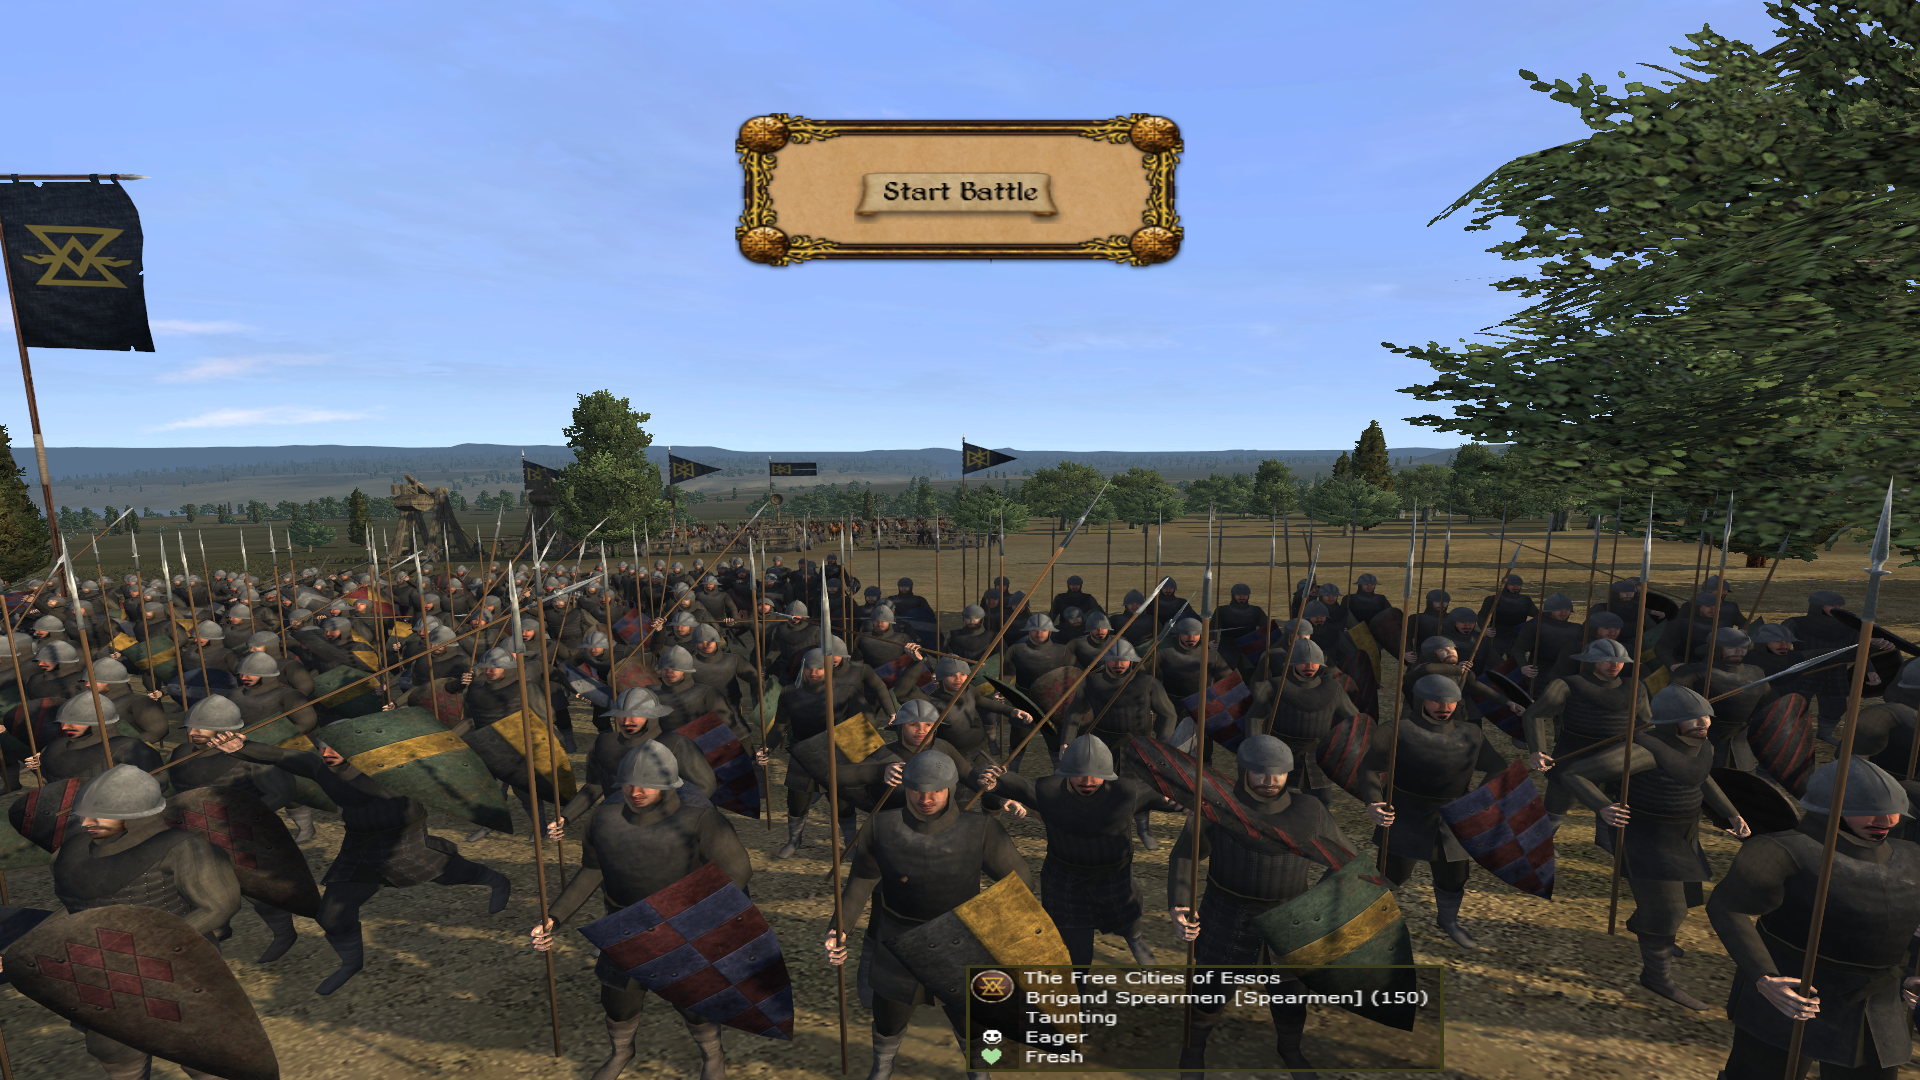 Brigand Spearmen a new unit for the Free Cities of Essos.